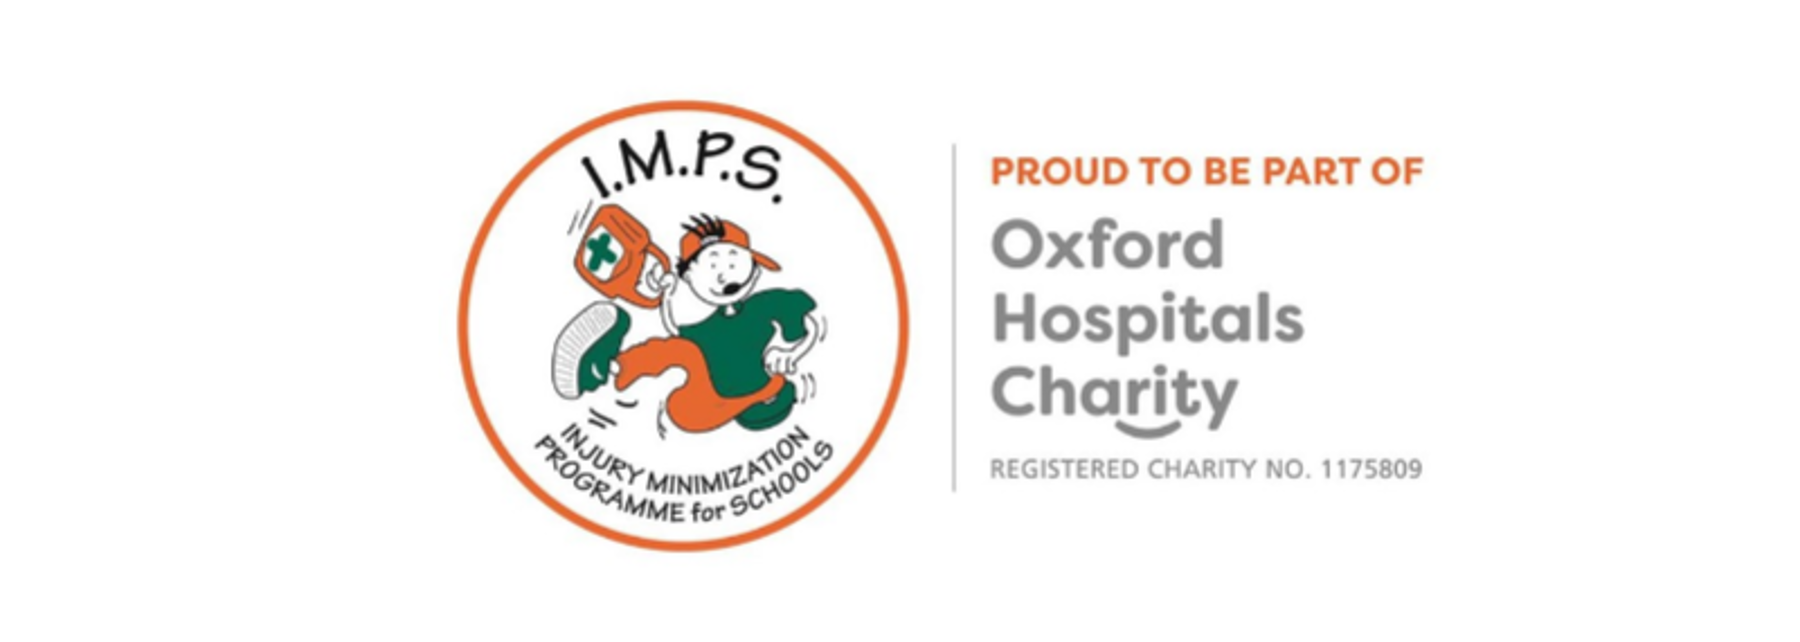 I.M.P.S. Injury Minimization Programme for Schools, proud to be part of Oxford Hospitals Charity